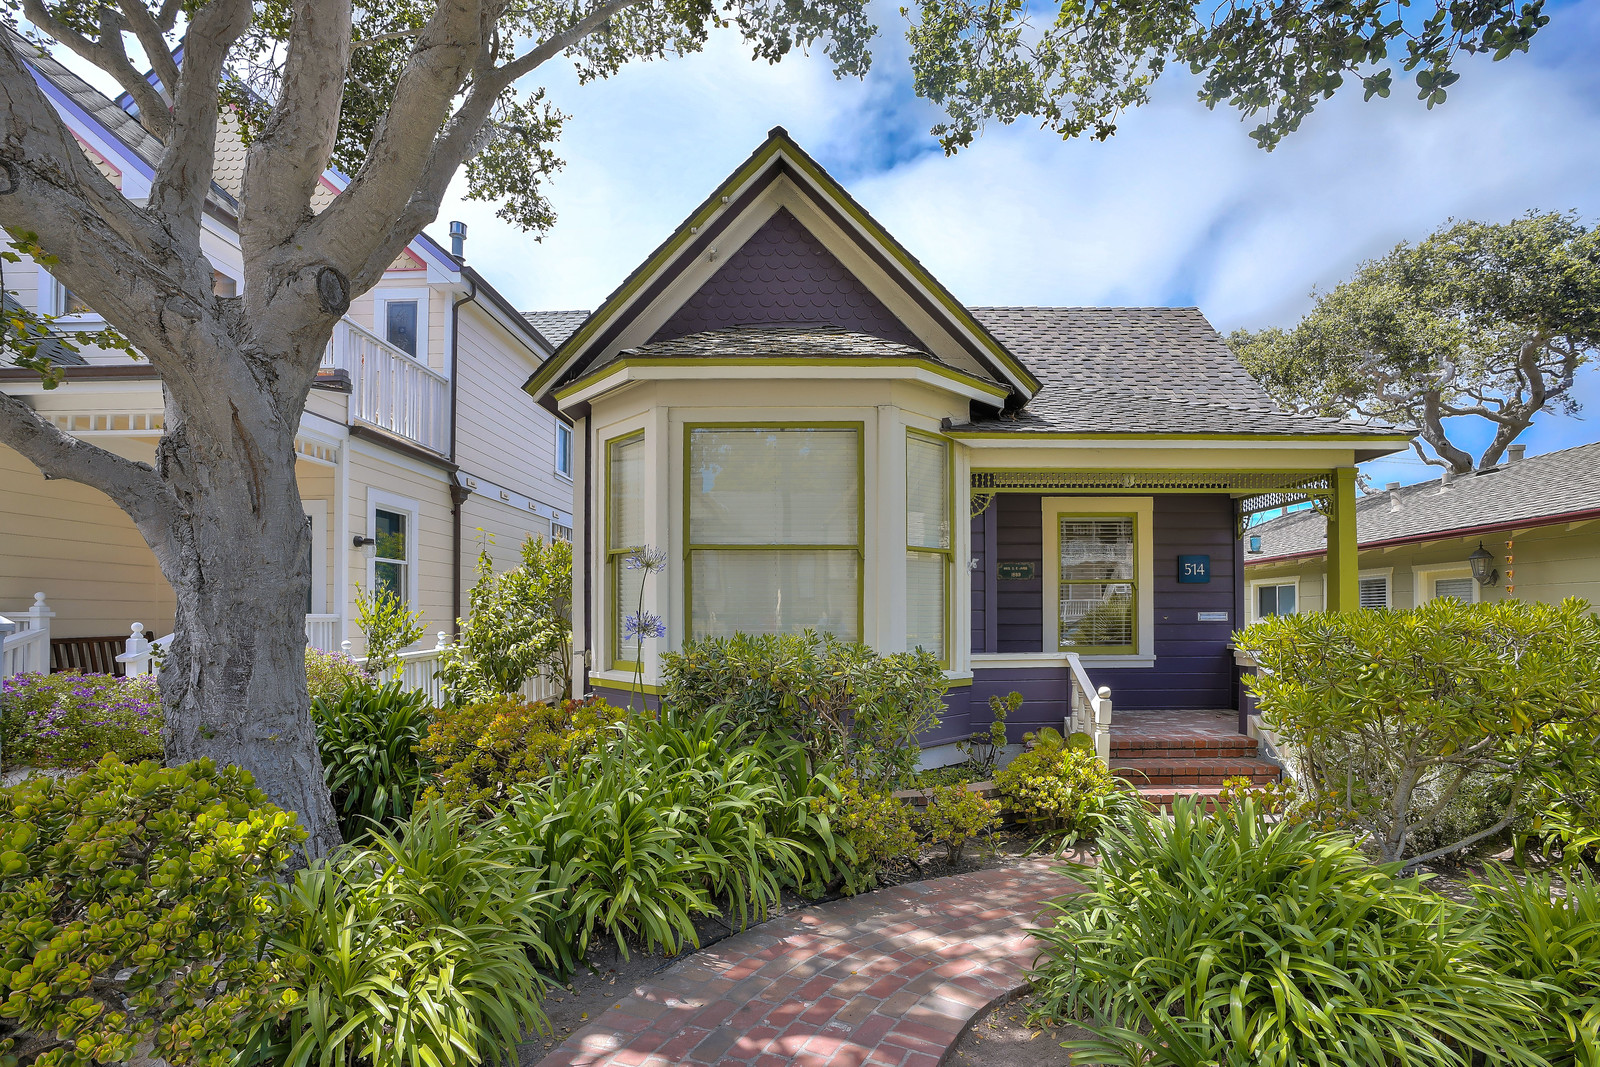 Pacific Grove Victorian Cottage